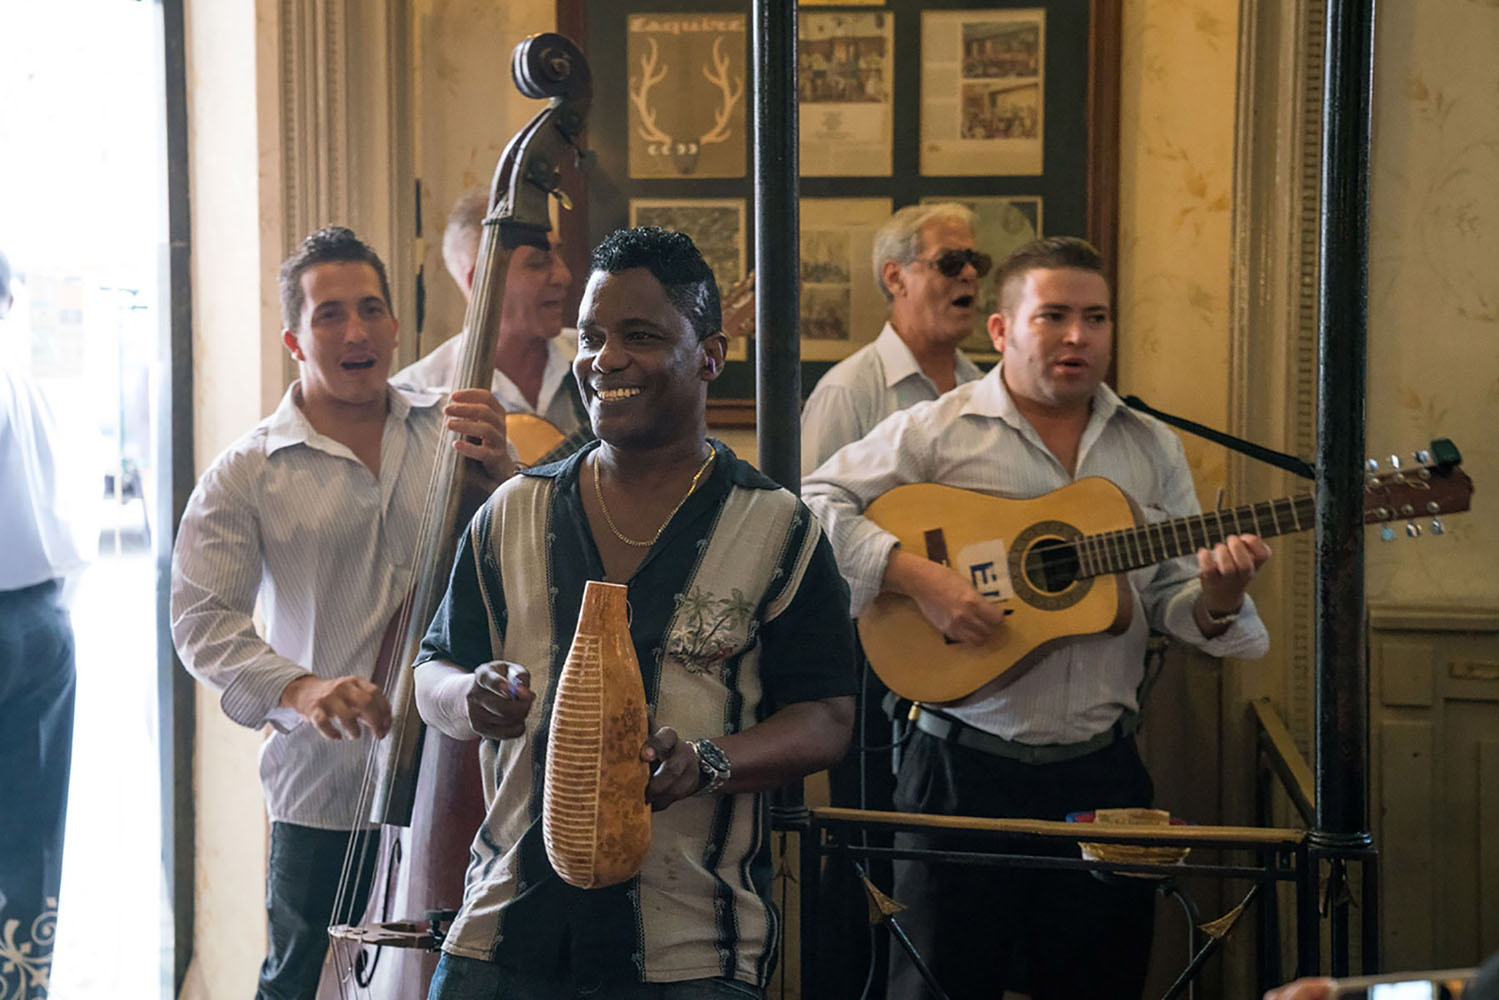 Cubans playing Nuevo Trova, a type of Cuban music